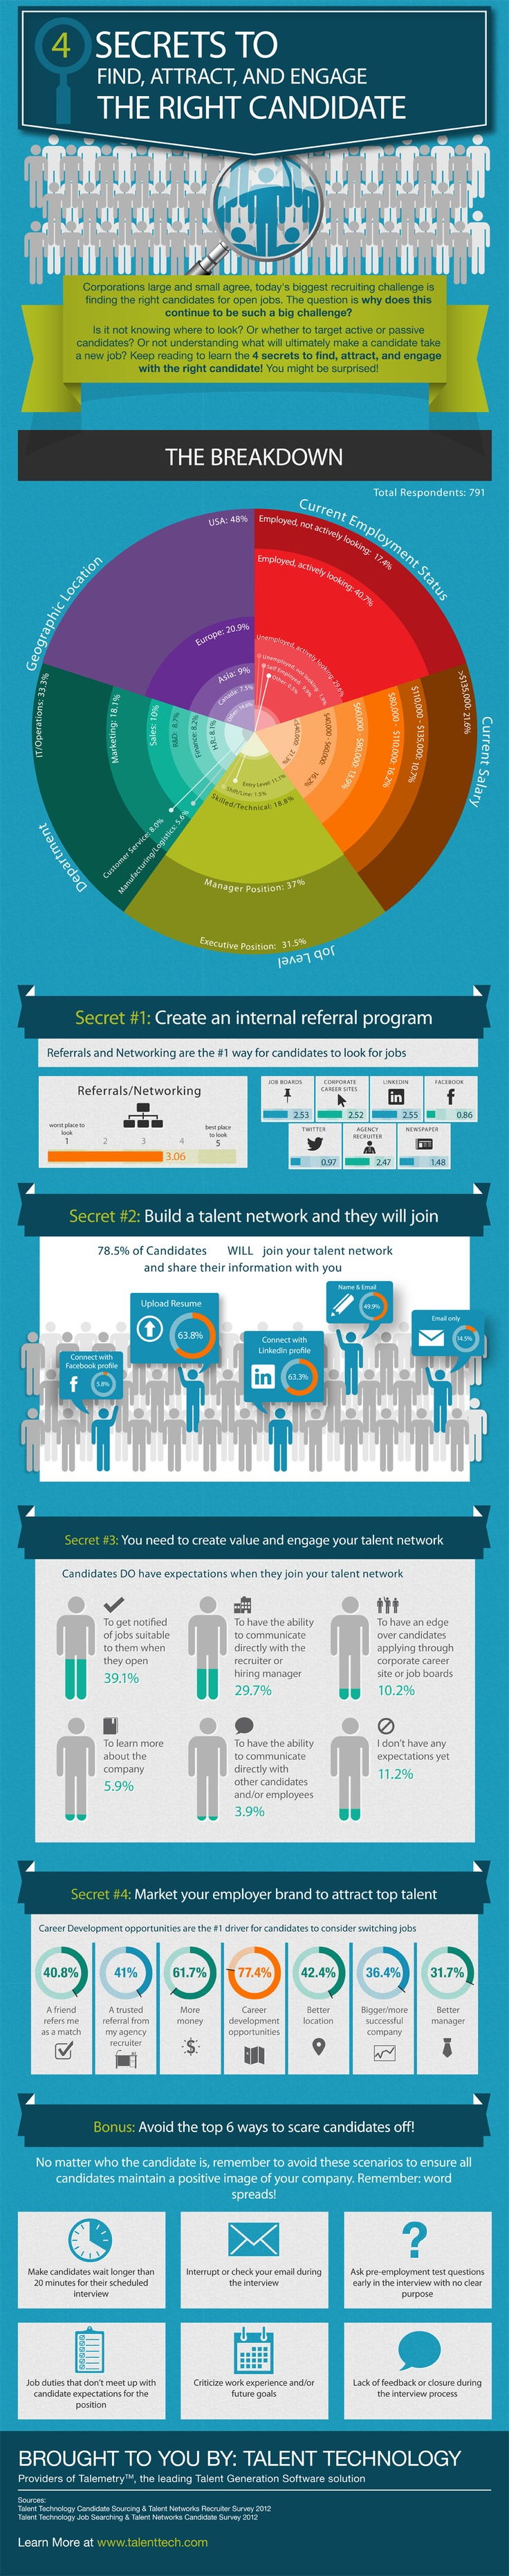 4 Secrets to Finding, Attracting and Engaging the Right Candidates [INFOGRAPHIC]